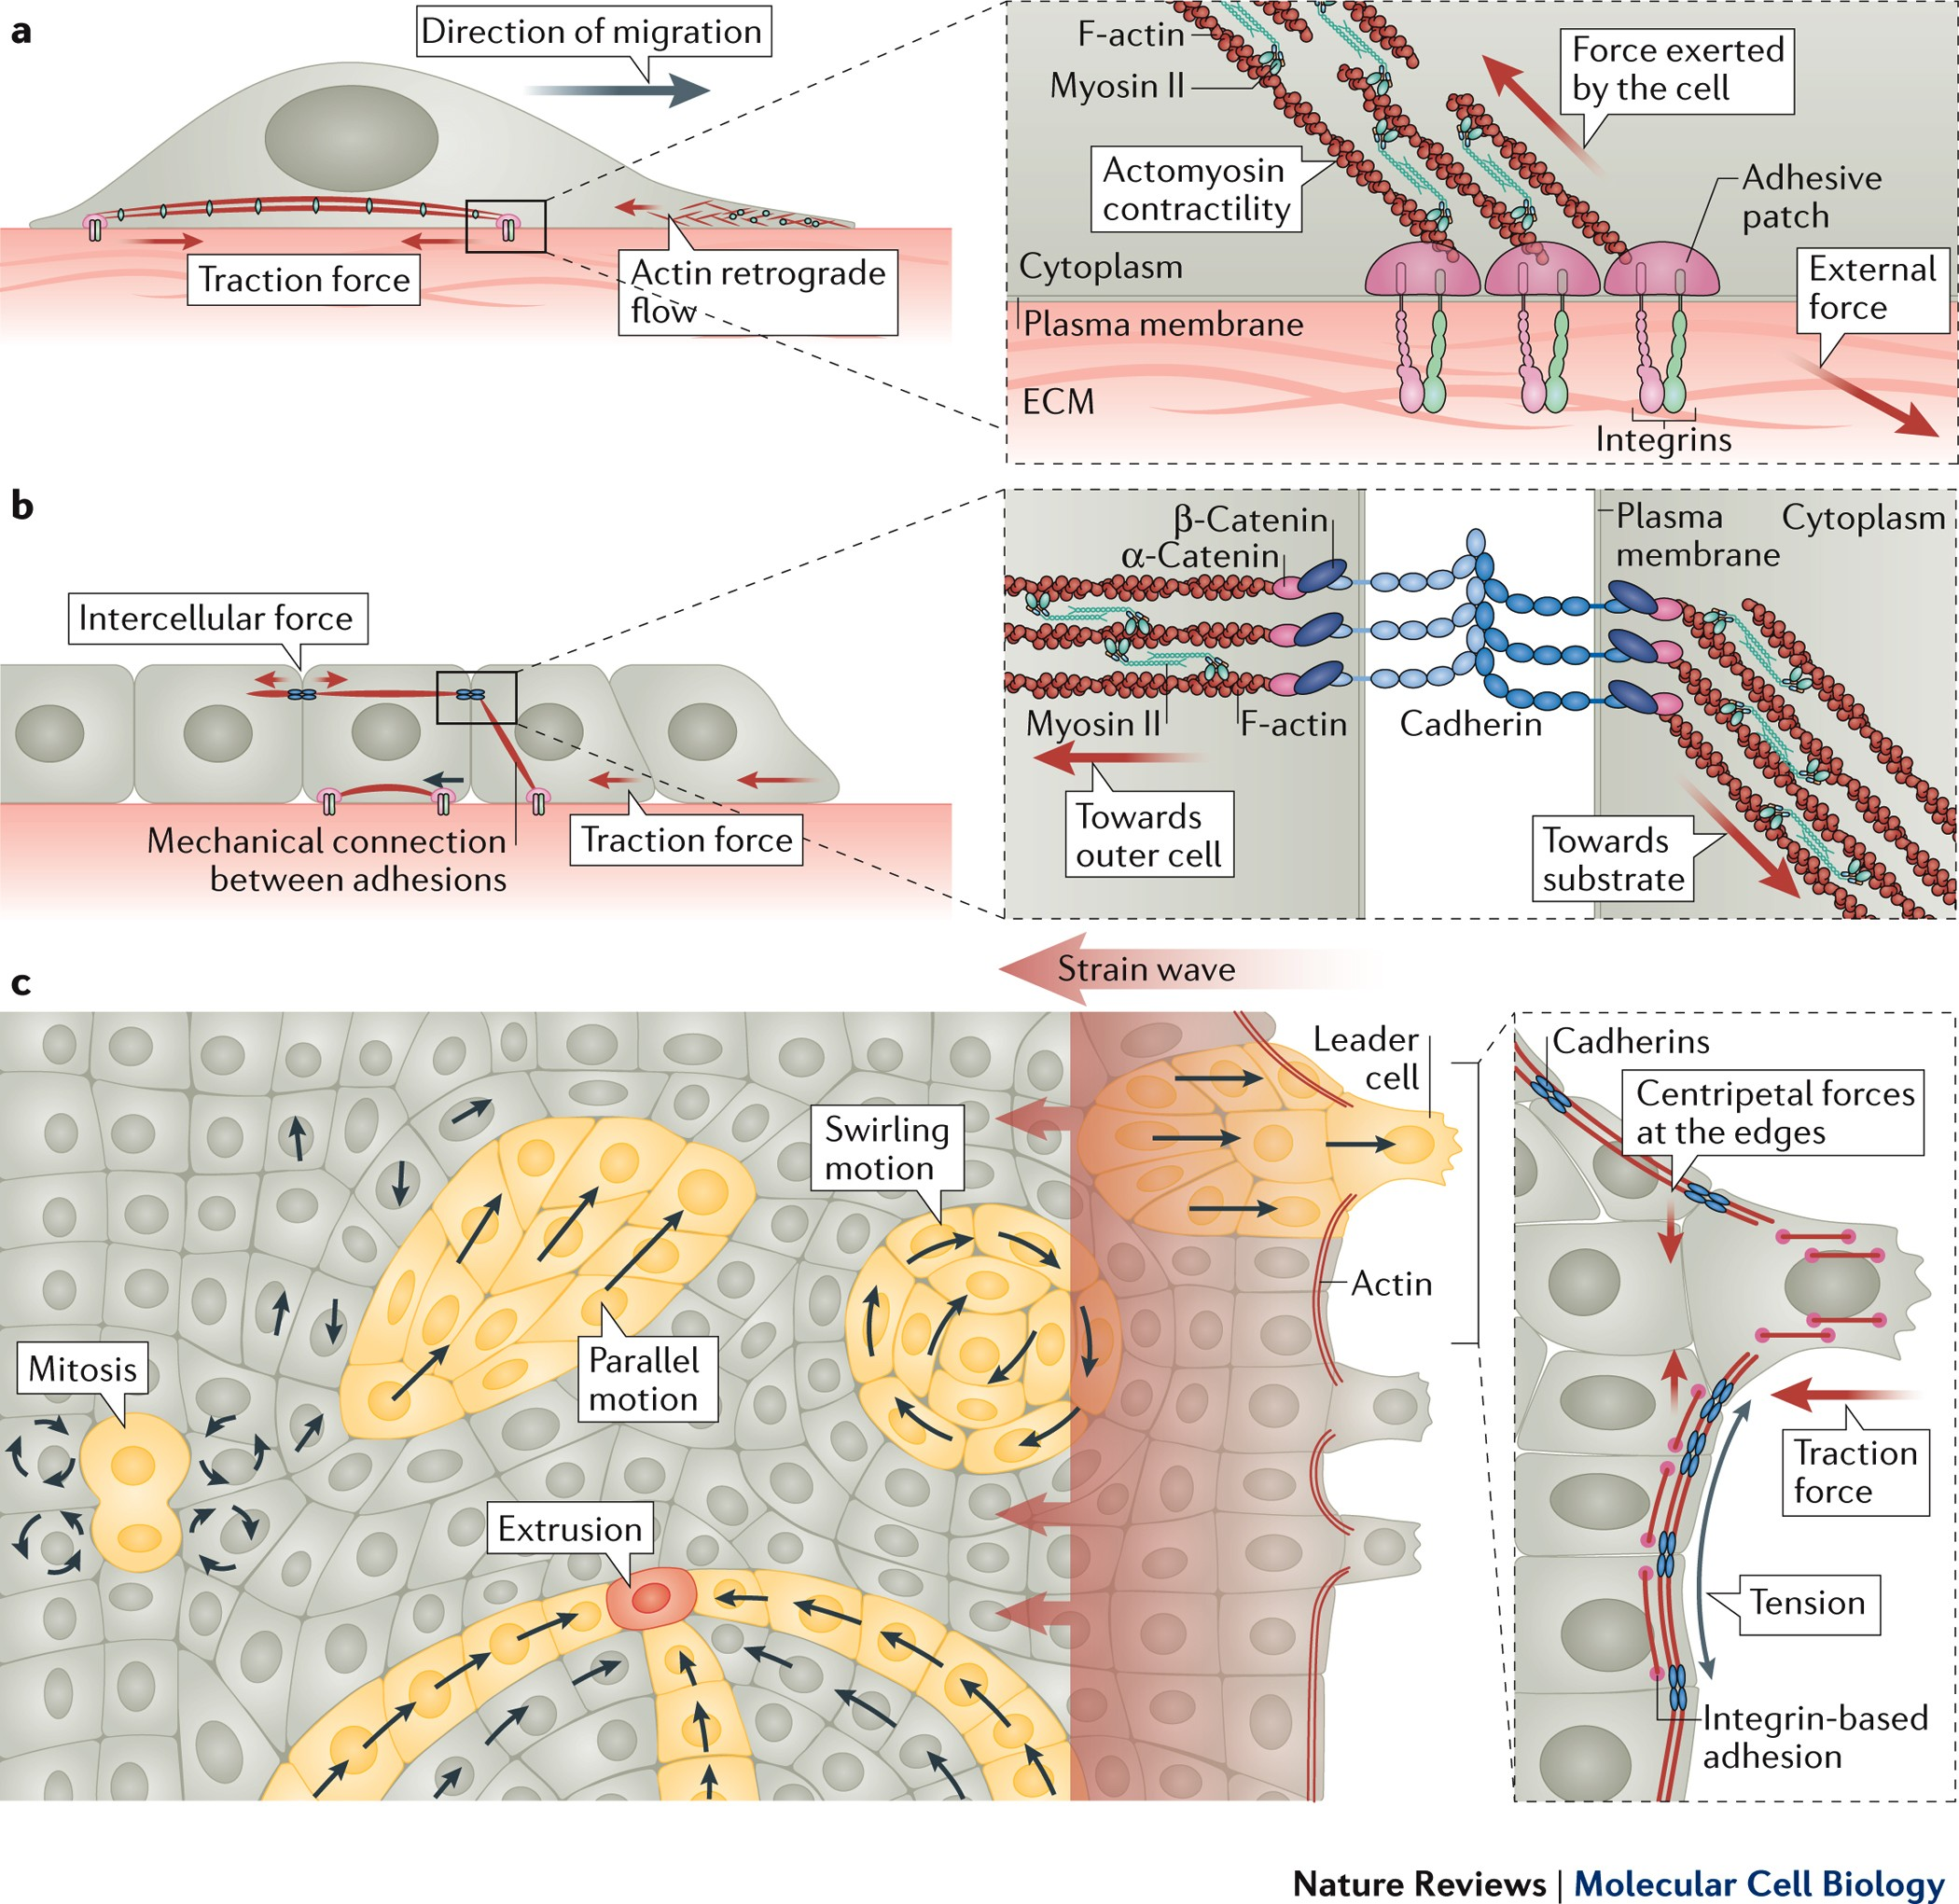 4969 transfer switch wiring diagram mechanobiology of collective cell behaviours nature reviews  mechanobiology of collective cell